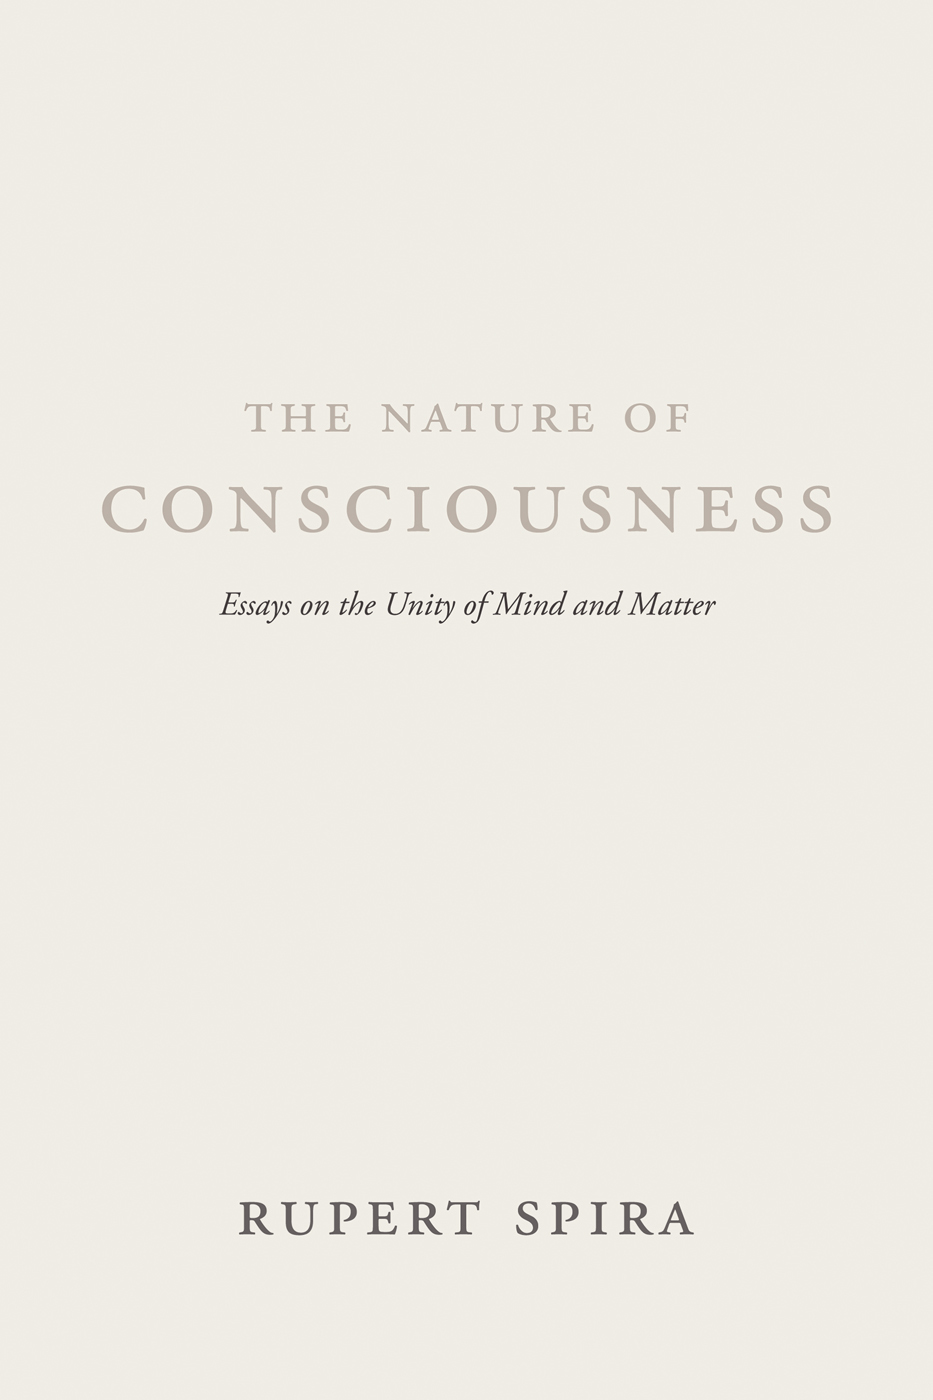 The Nature of Consciousness Essays on the Unity of Mind and Matter